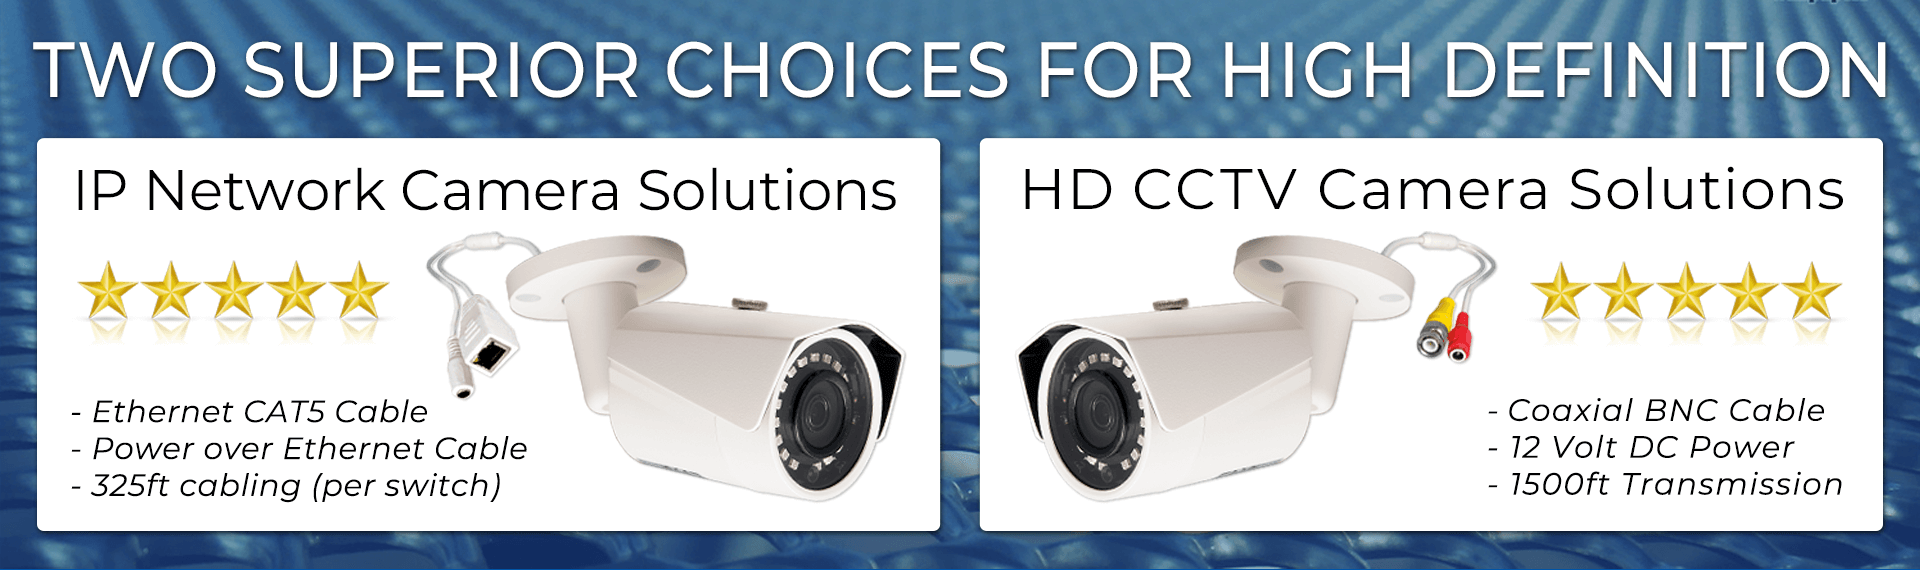 new-ip-hd-cctv-resized-1-copy.png